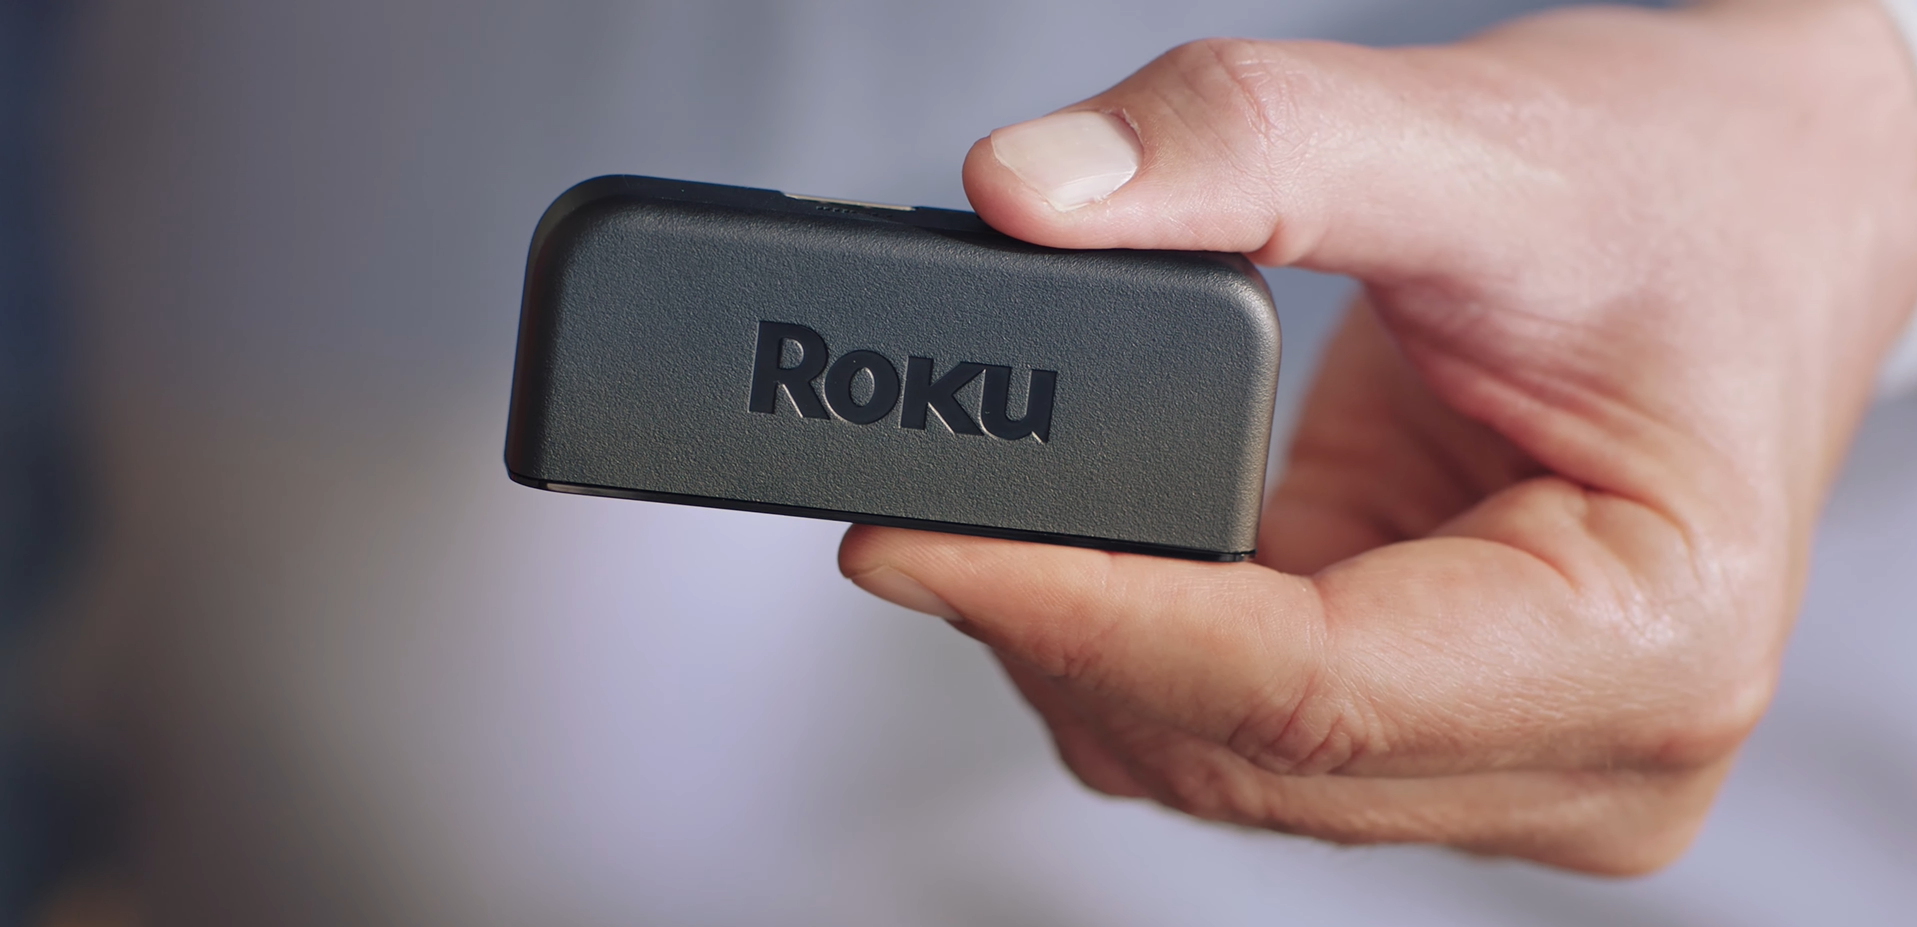 The Roku Premiere uses 802.11n Wi-Fi and a simpler remote without voice controls, but it still streams 4K and HDR video on the cheap.